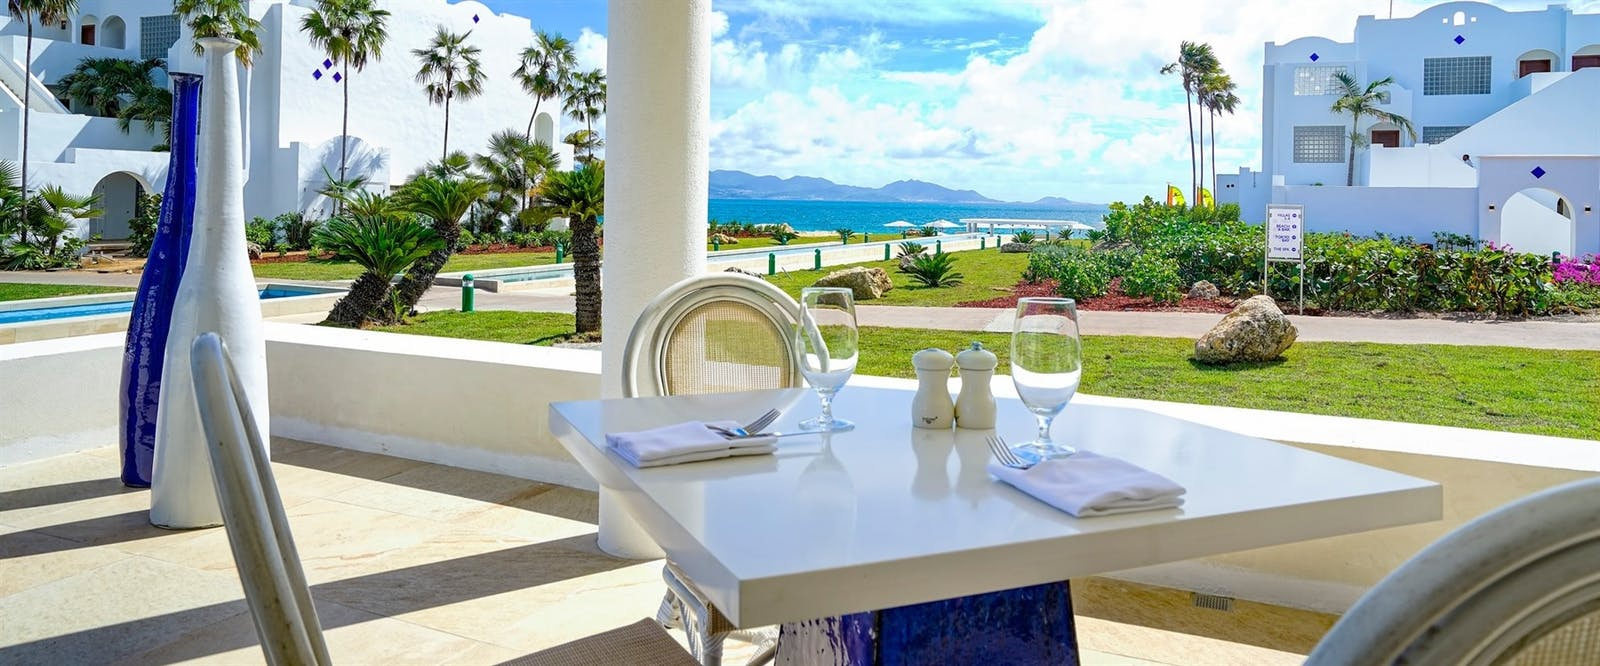 Mosaic Restaurant at CuisinArt Golf Resort & Spa, Anguilla